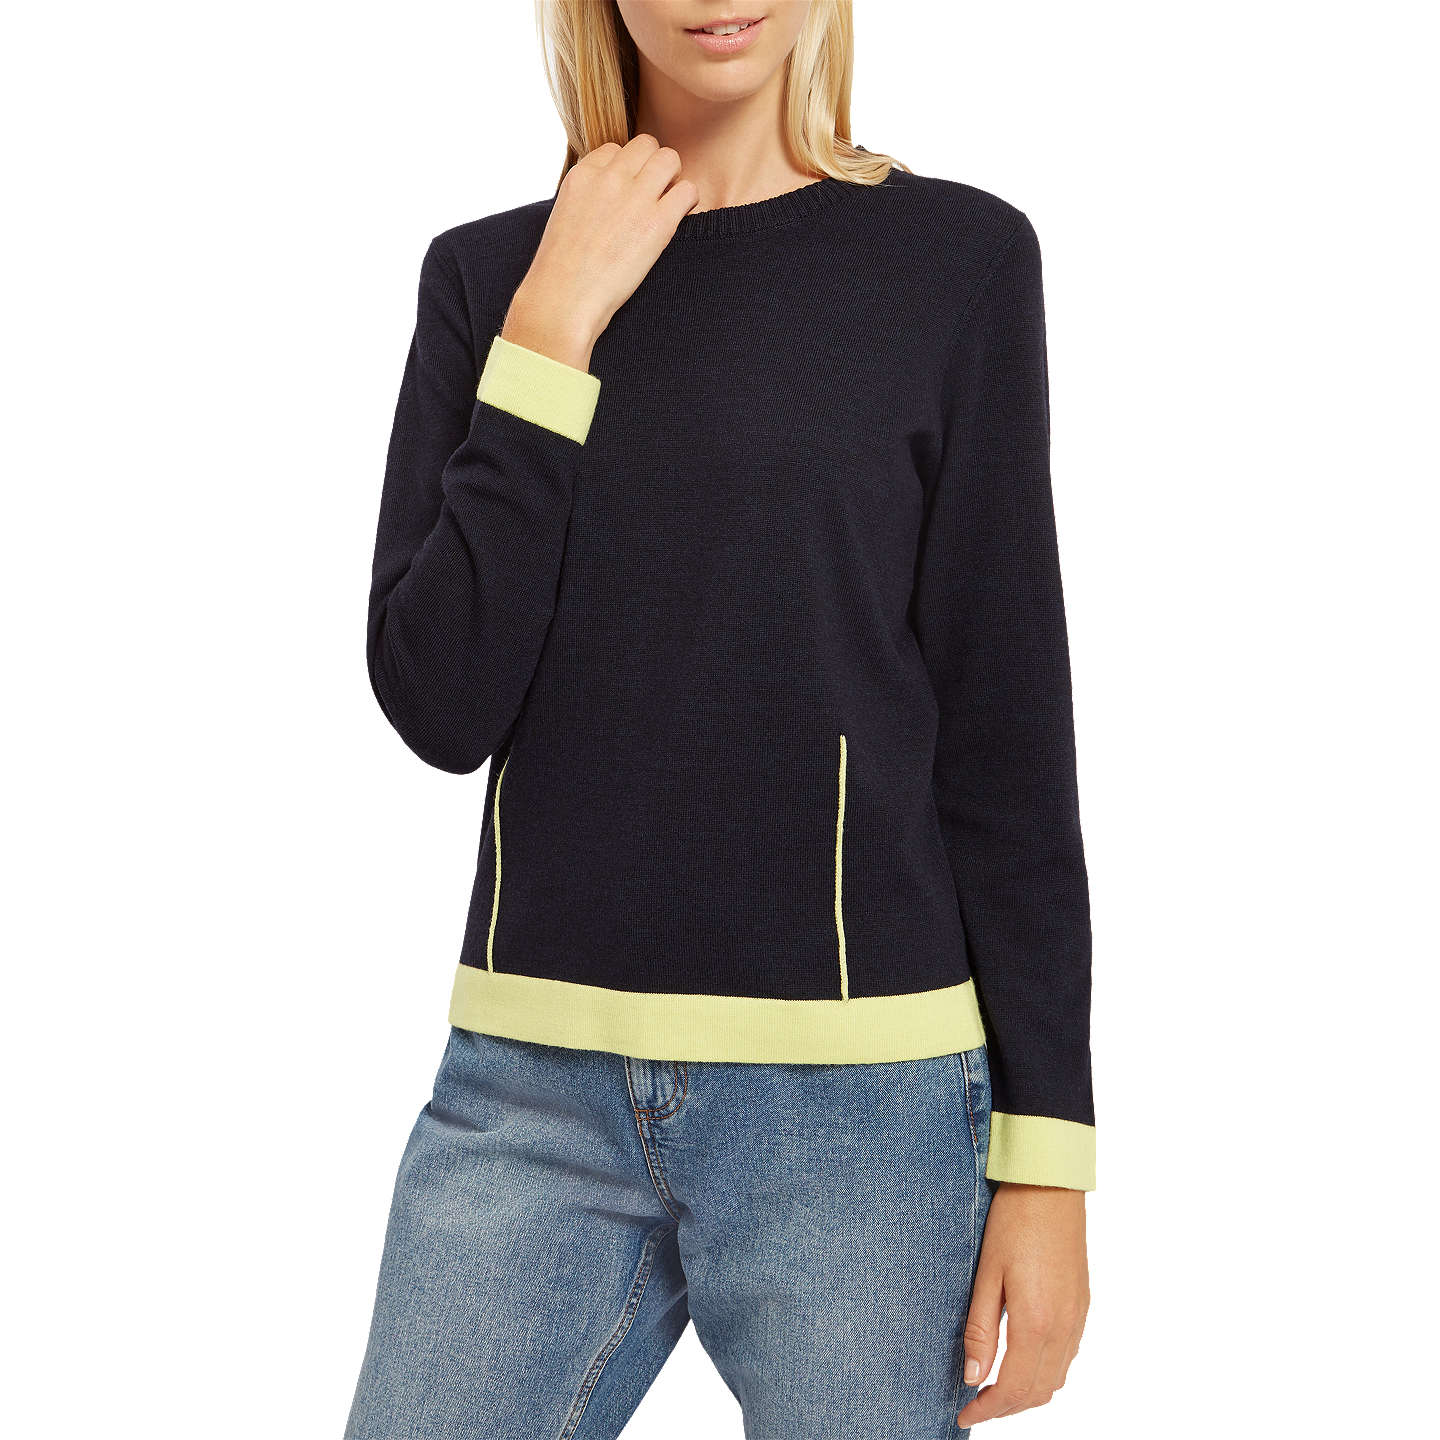 BuyJaeger Mixed Gauge Dart Sweater, Midnight, M Online at johnlewis.com